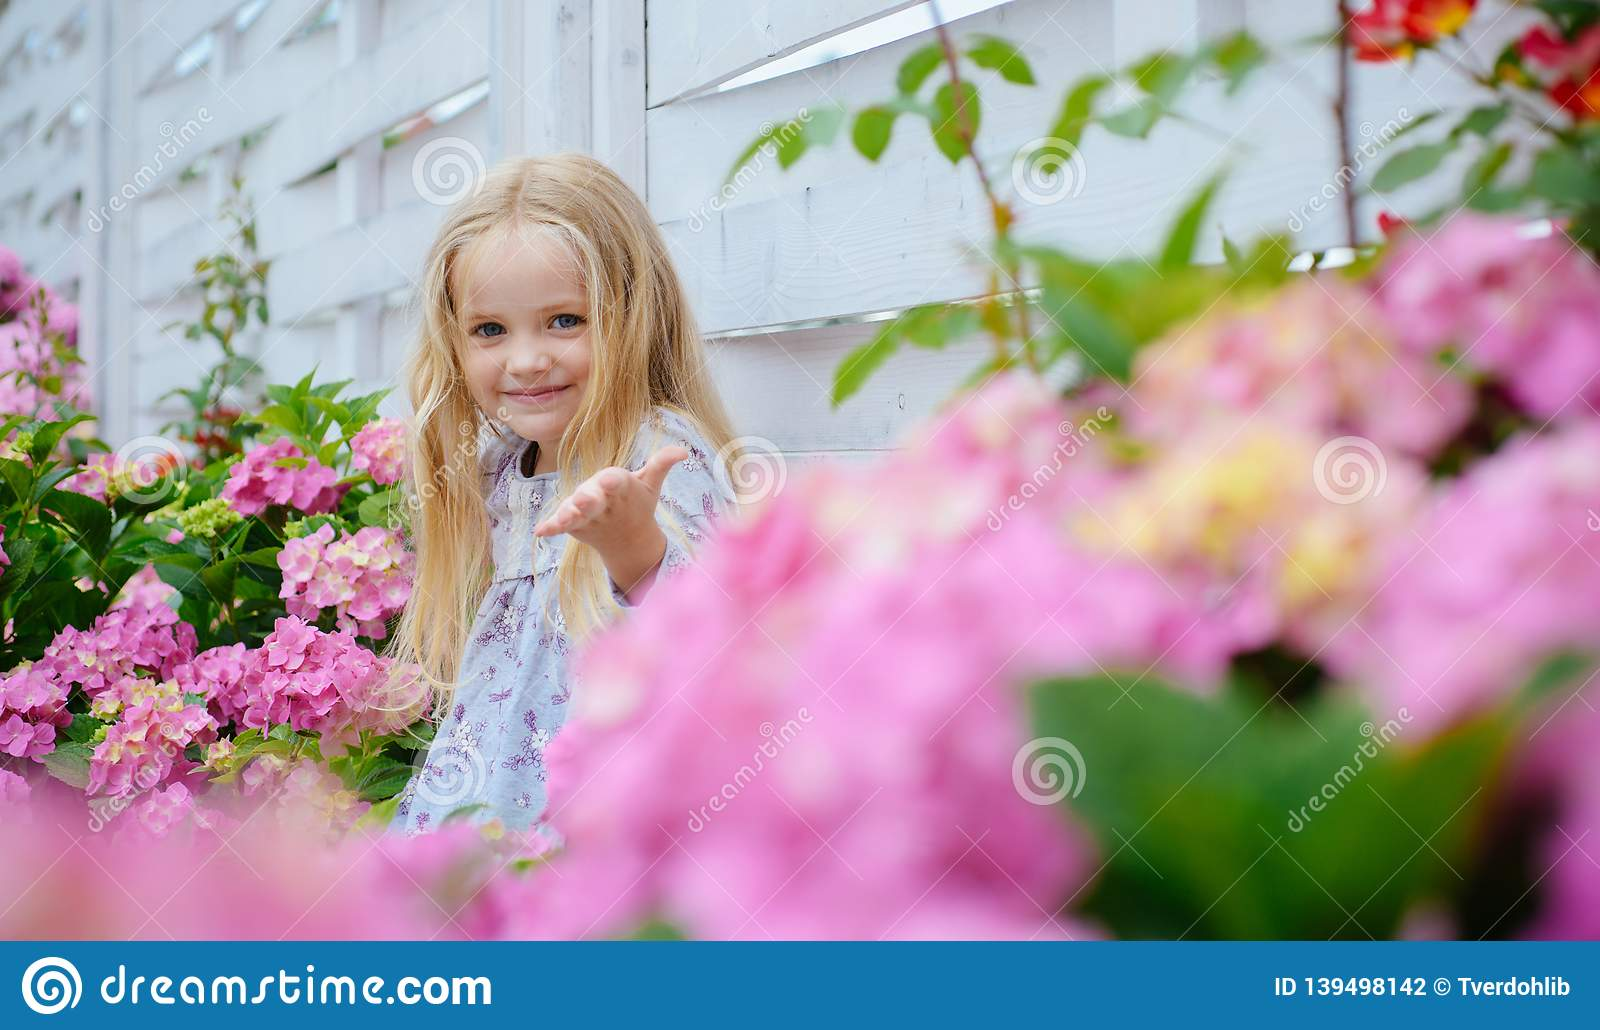 New life concept. Spring holiday. Summer. Mothers or womens day. Childrens day. Small baby girl. Little girl at blooming